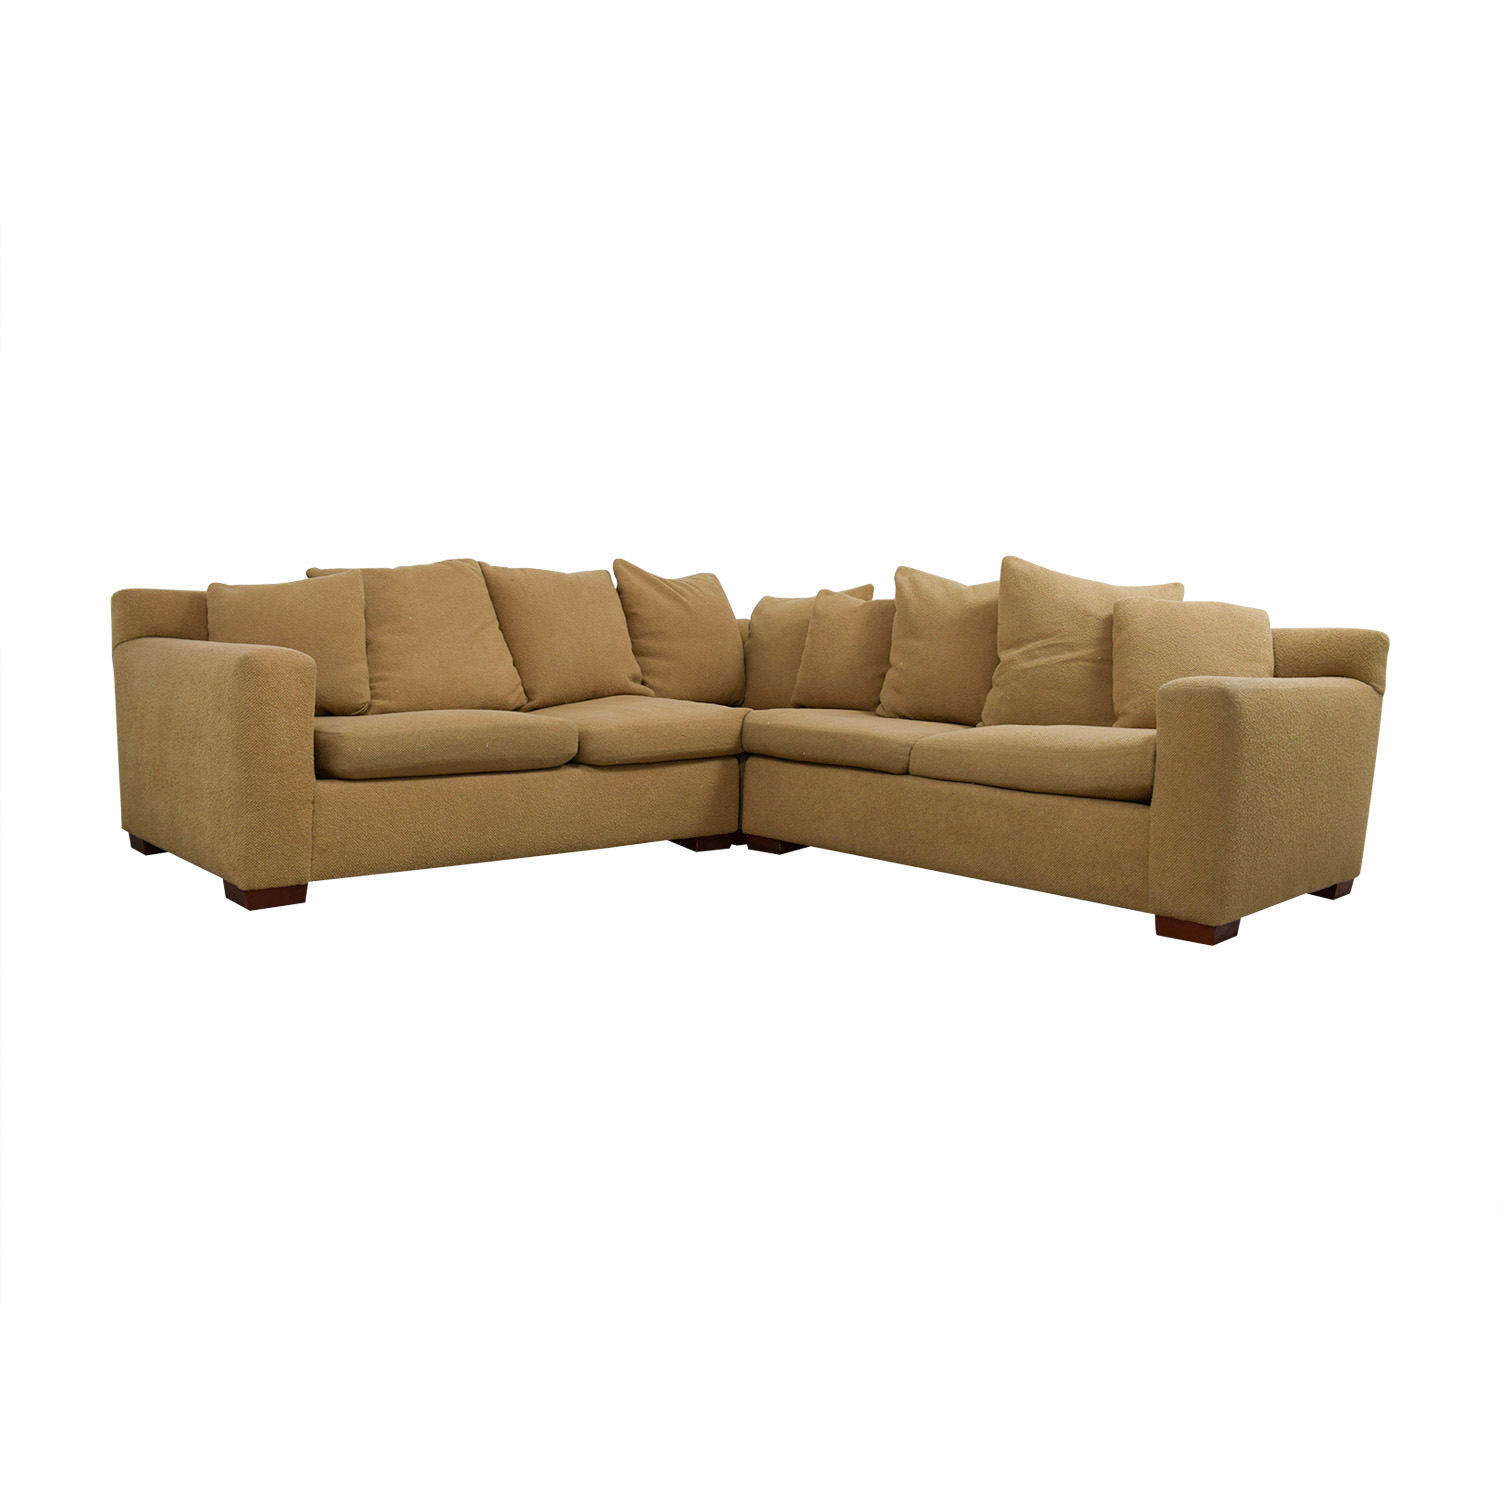 Ralph Lauren Ralph Lauren Down Filled Tan Sectional Sofas